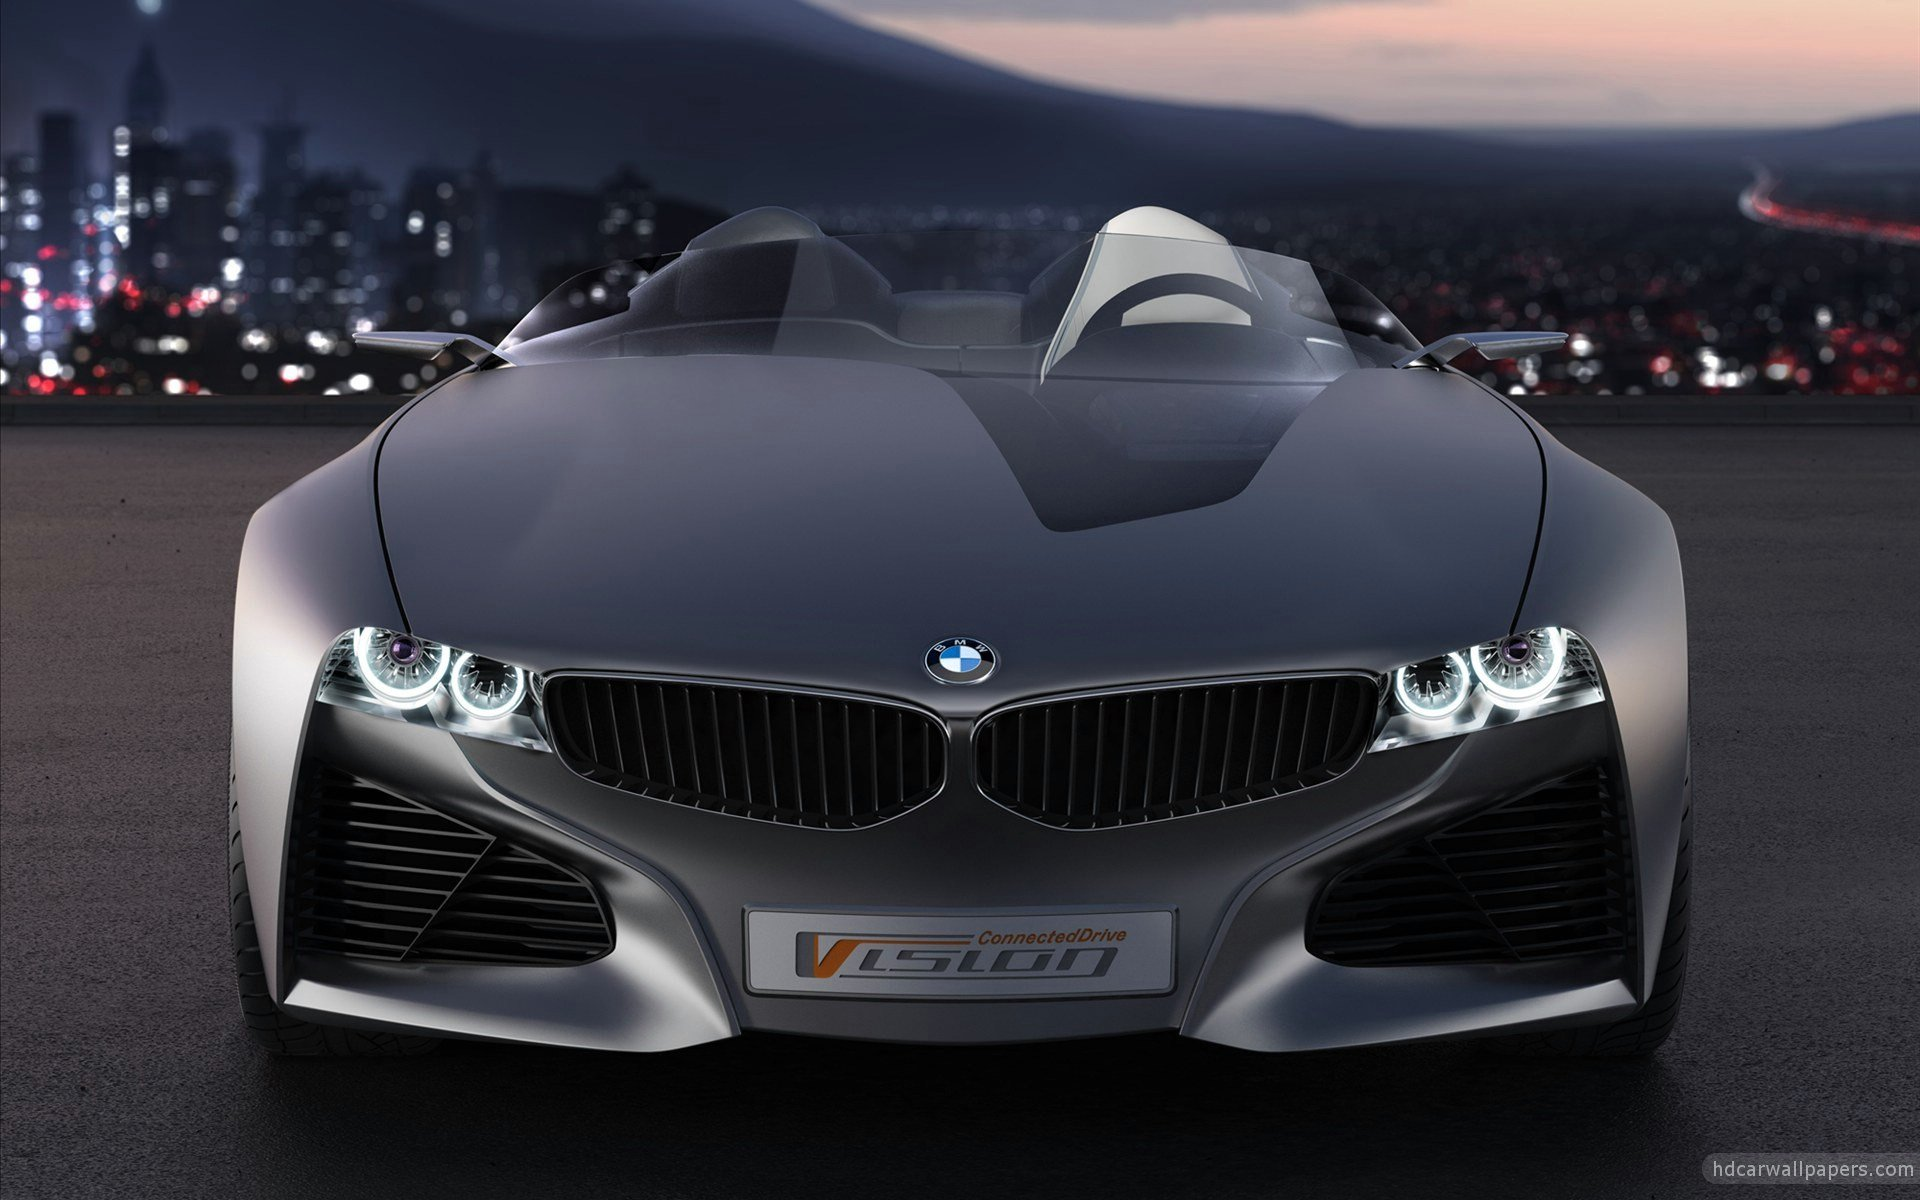 Latest 2011 Bmw Vision Connected Drive Concept 5 Wallpaper Hd Free Download